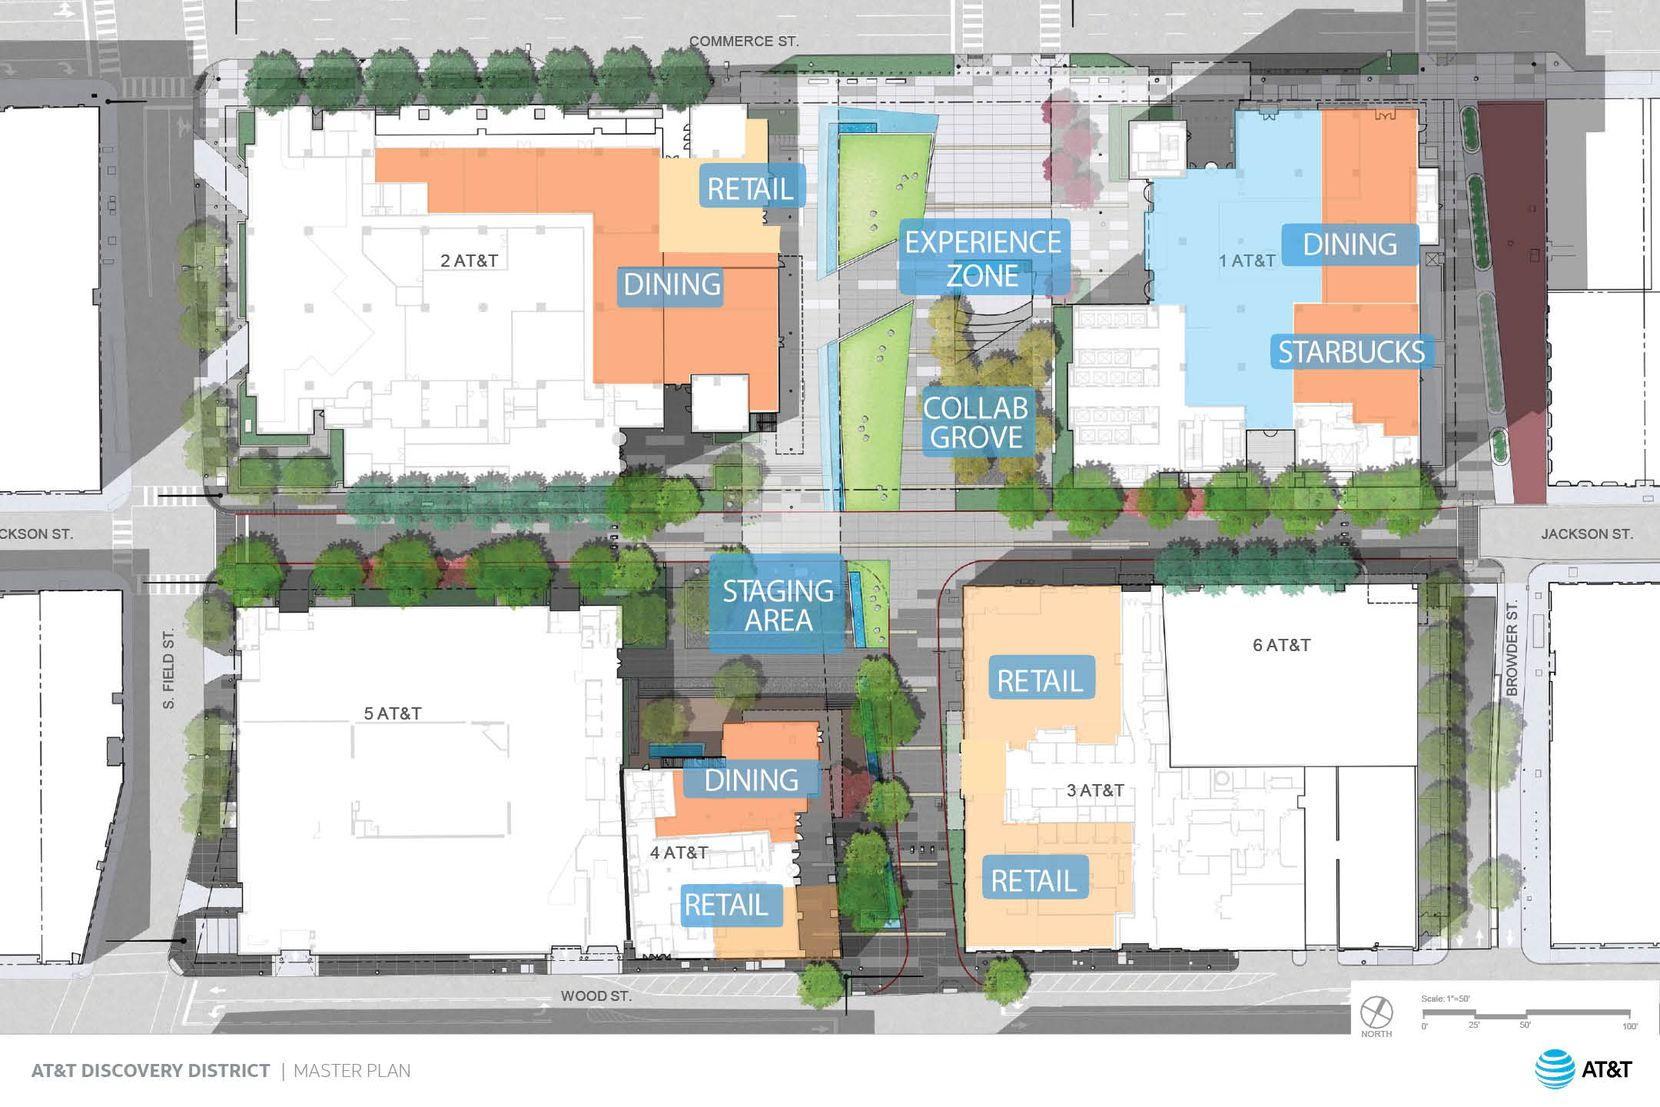 AT&T is spending $100 million to add new features and remodel its 4-building downtown campus.